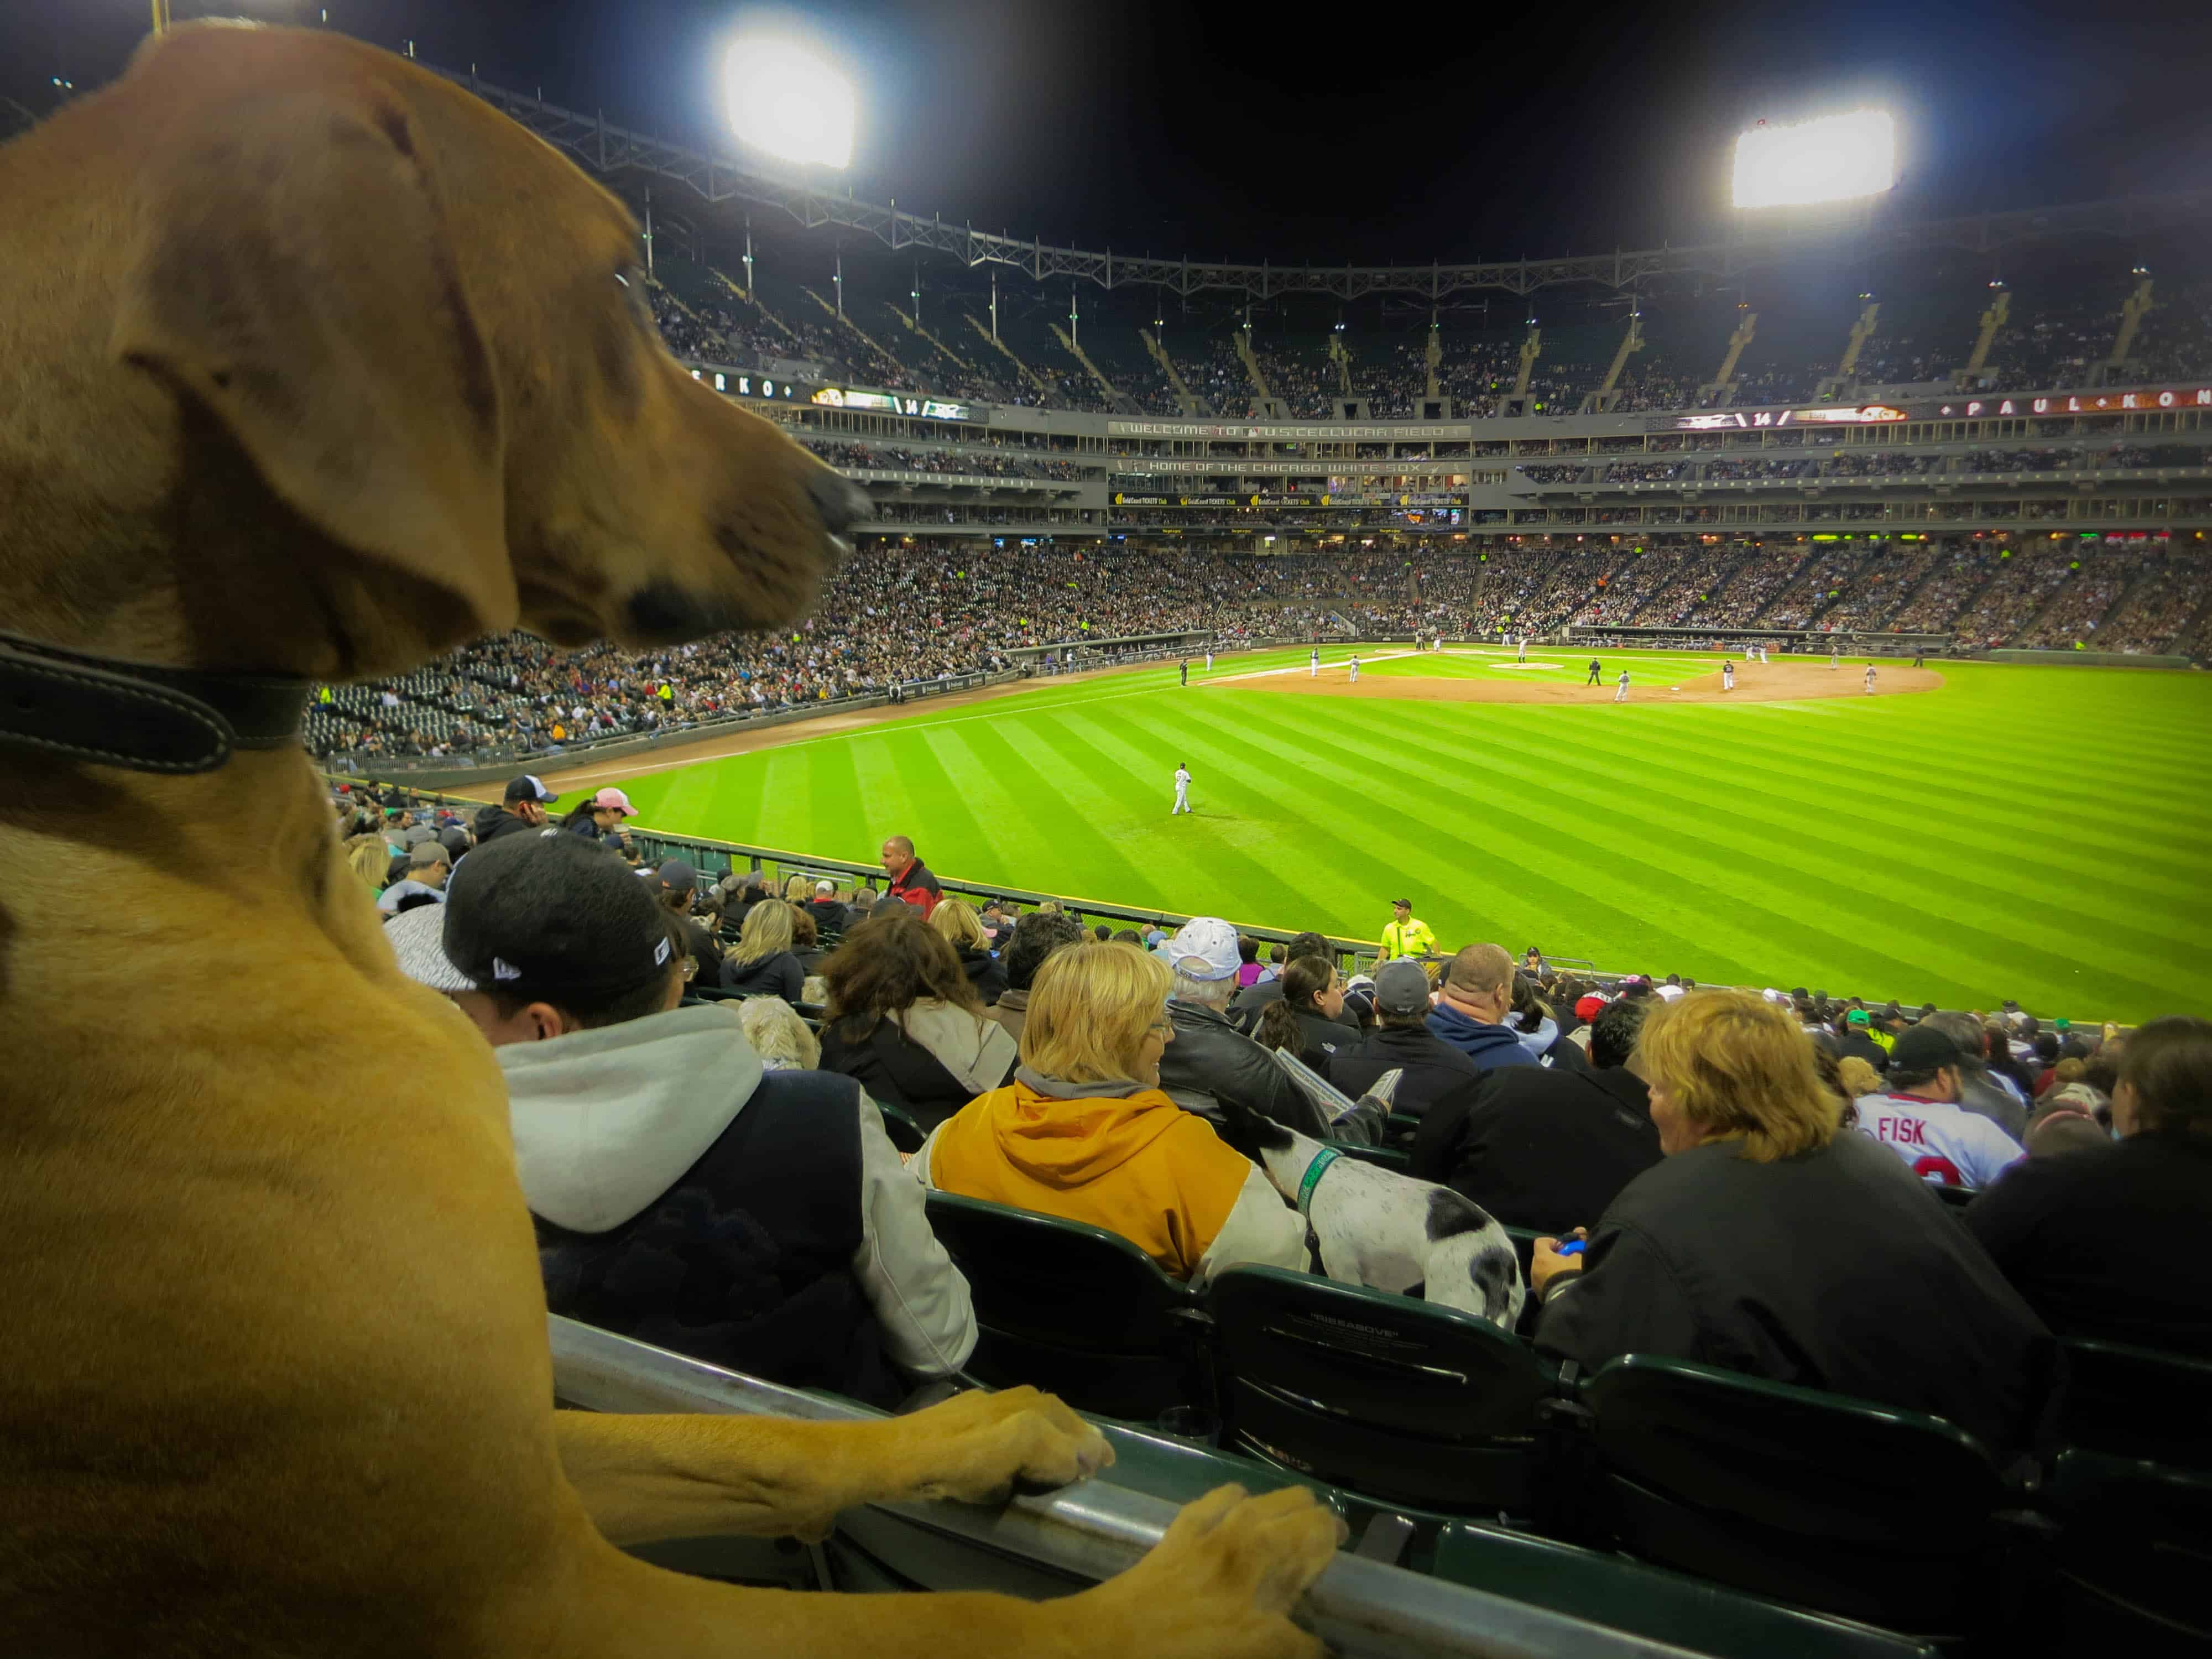 Pet blog, pet adventure, Major League Baseball, dogs, MLB, pooches in the park